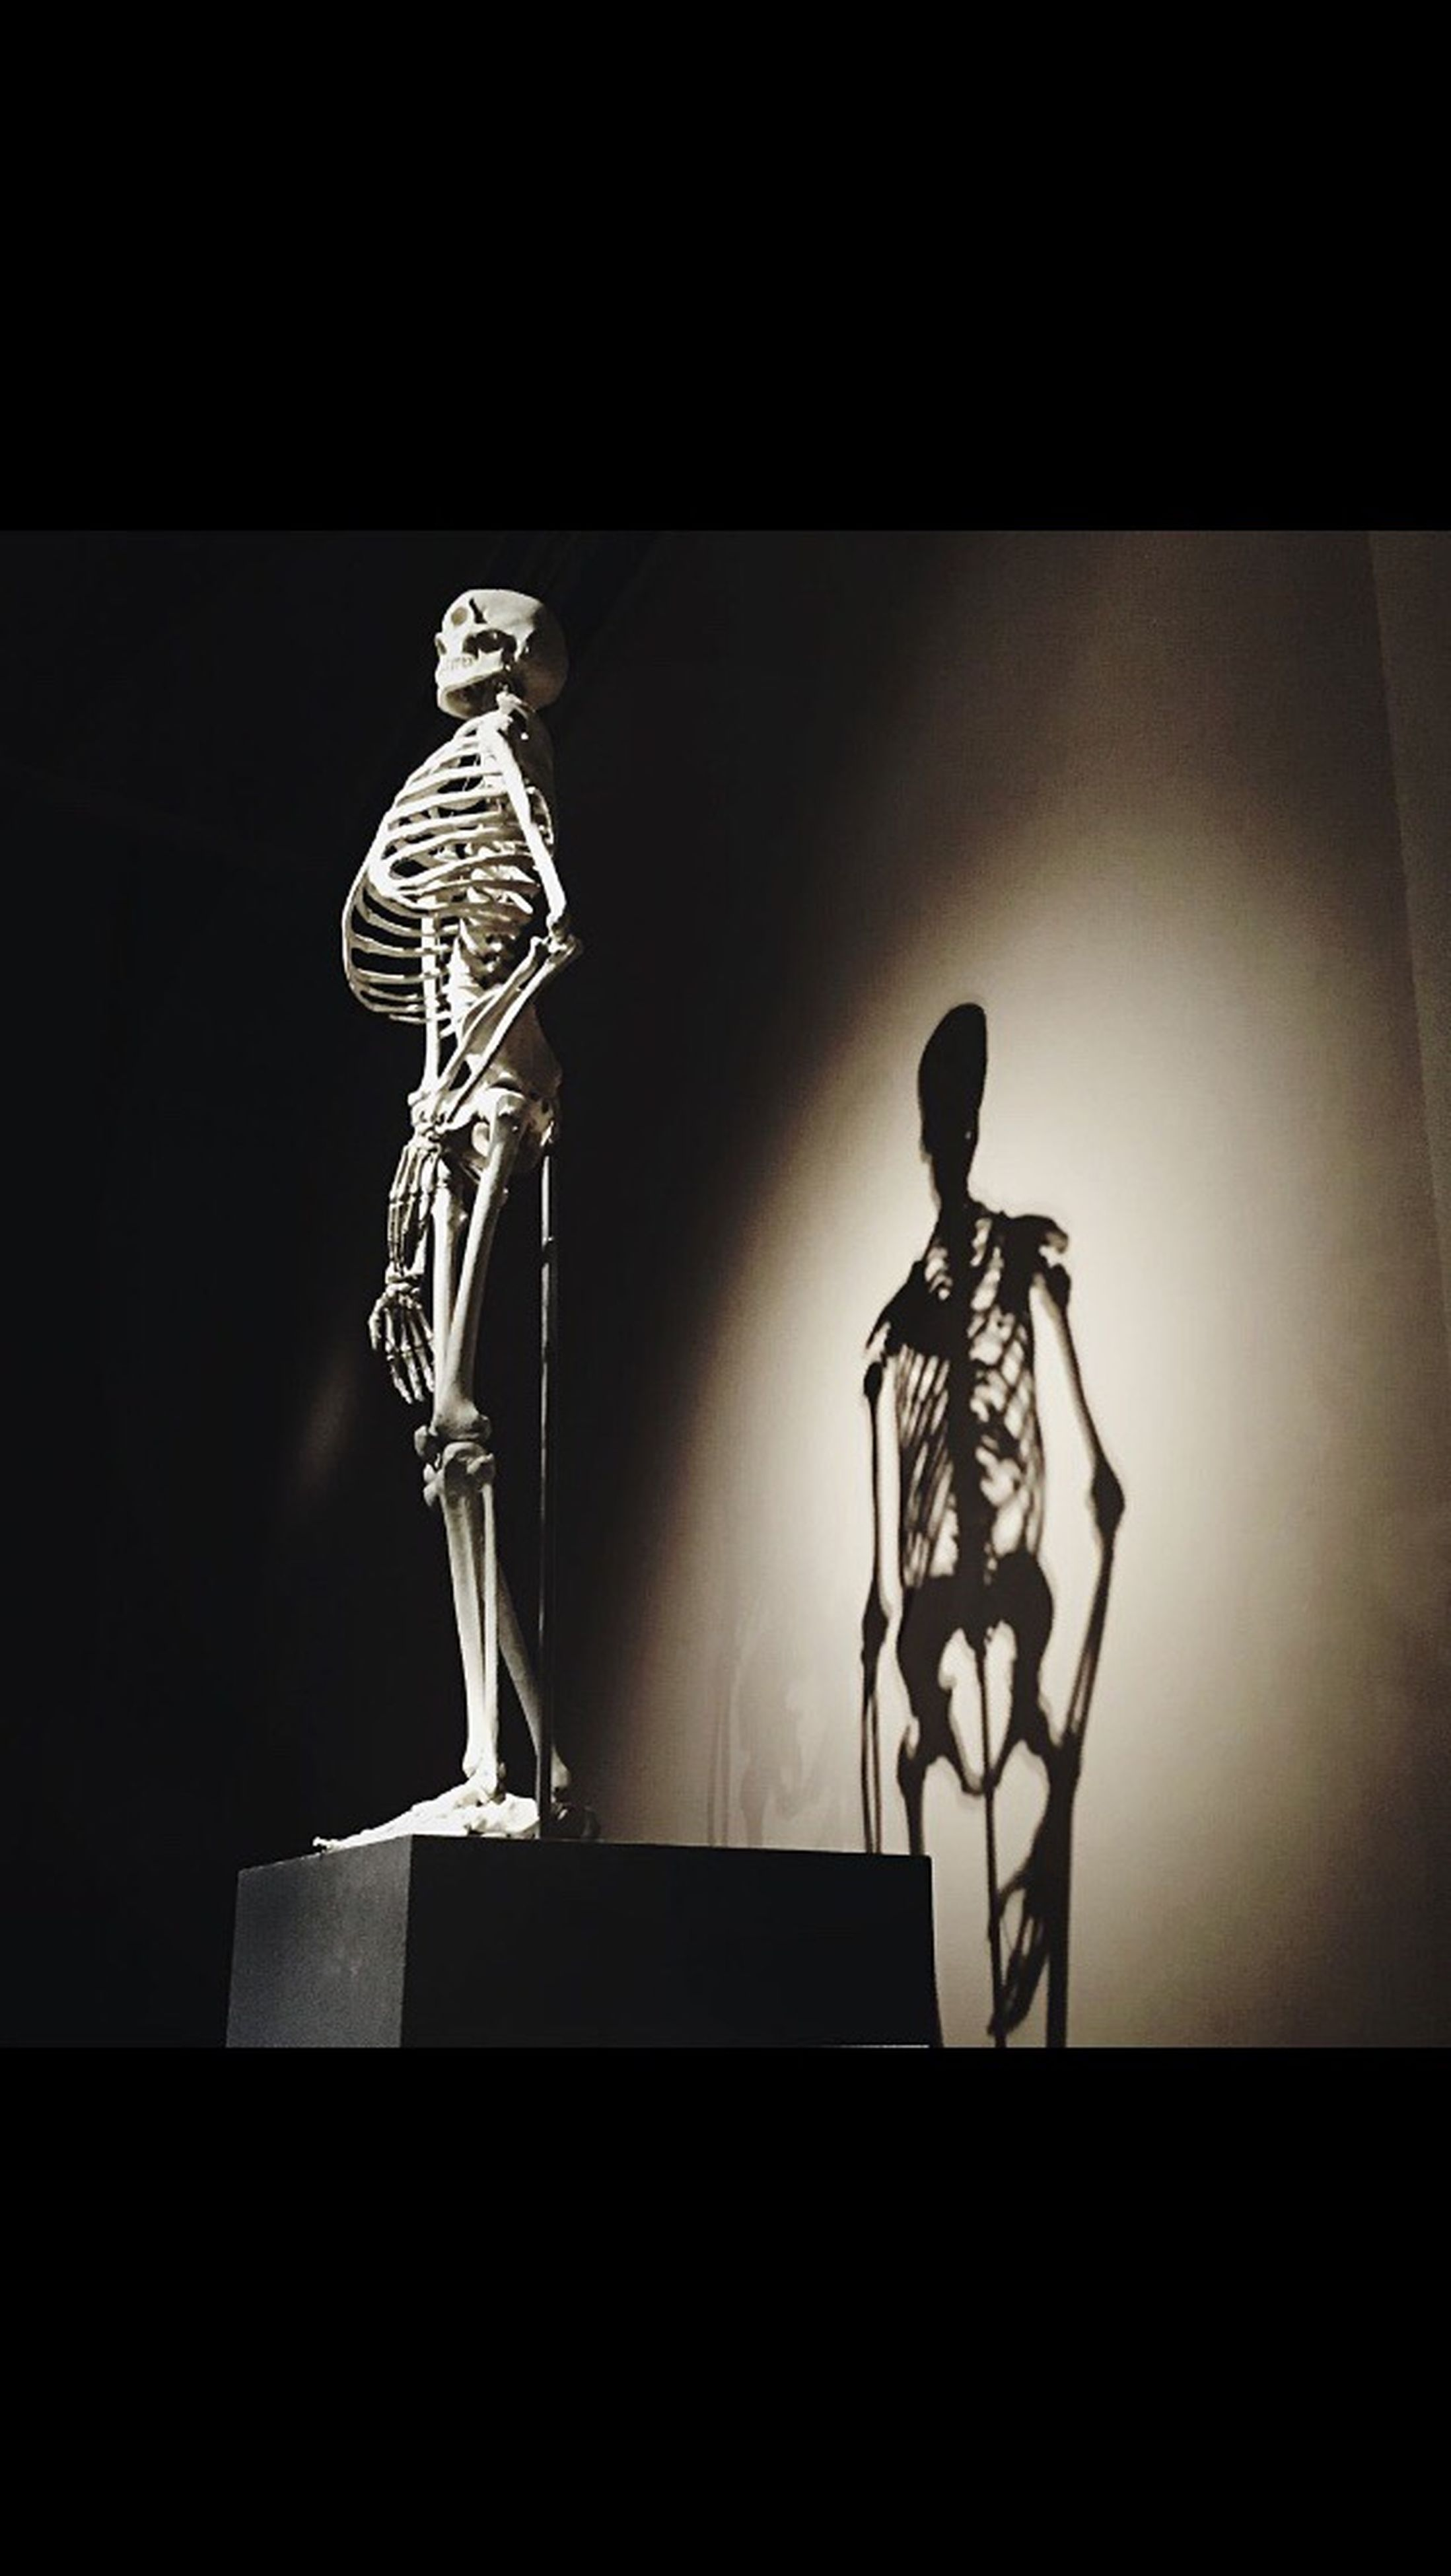 art, art and craft, creativity, human representation, animal representation, indoors, wall - building feature, auto post production filter, low angle view, sculpture, transfer print, no people, built structure, silhouette, statue, wall, copy space, close-up